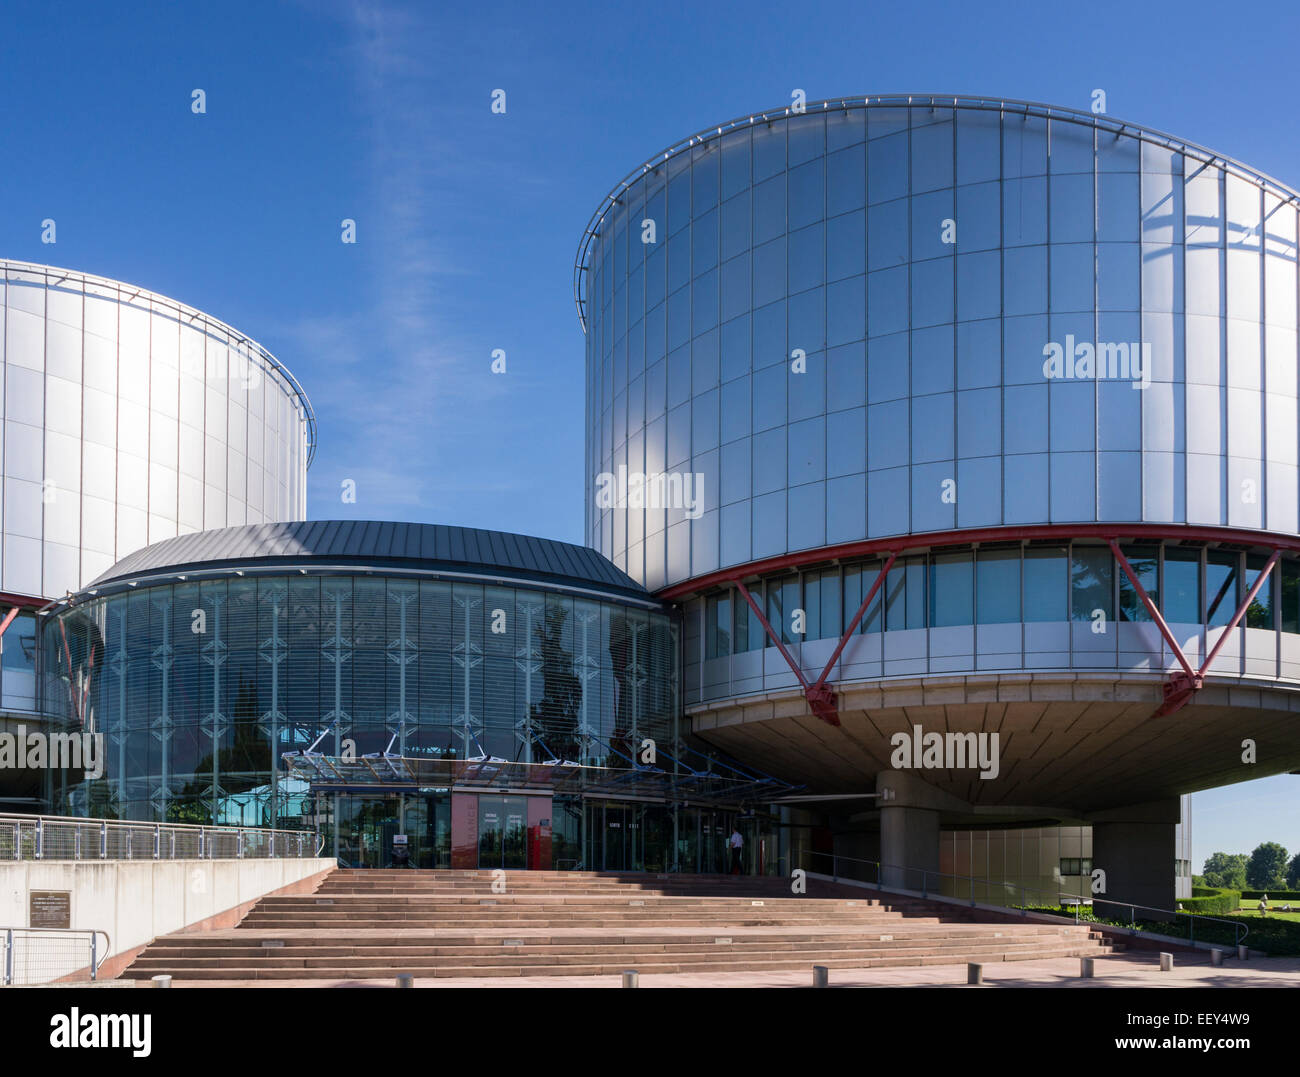 European Court of Human Rights Building, Strasbourg, France, Europe - Stock Image